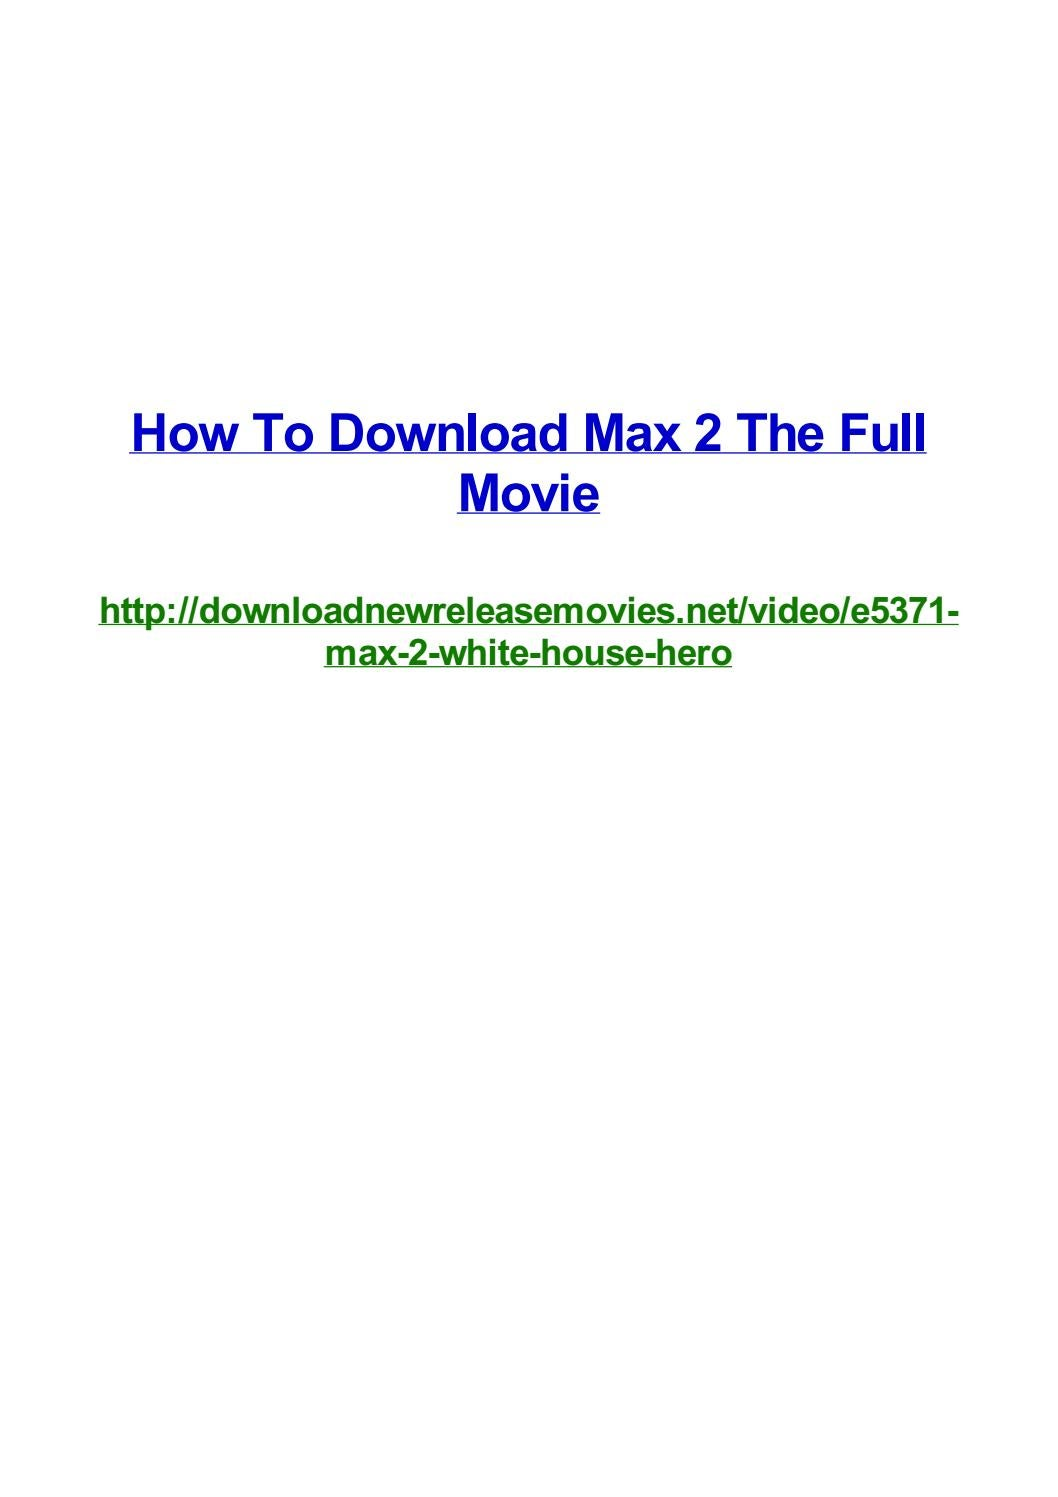 How to download max 2 the full movie by frank seamons issuu 4 star cinemas garden grove ca